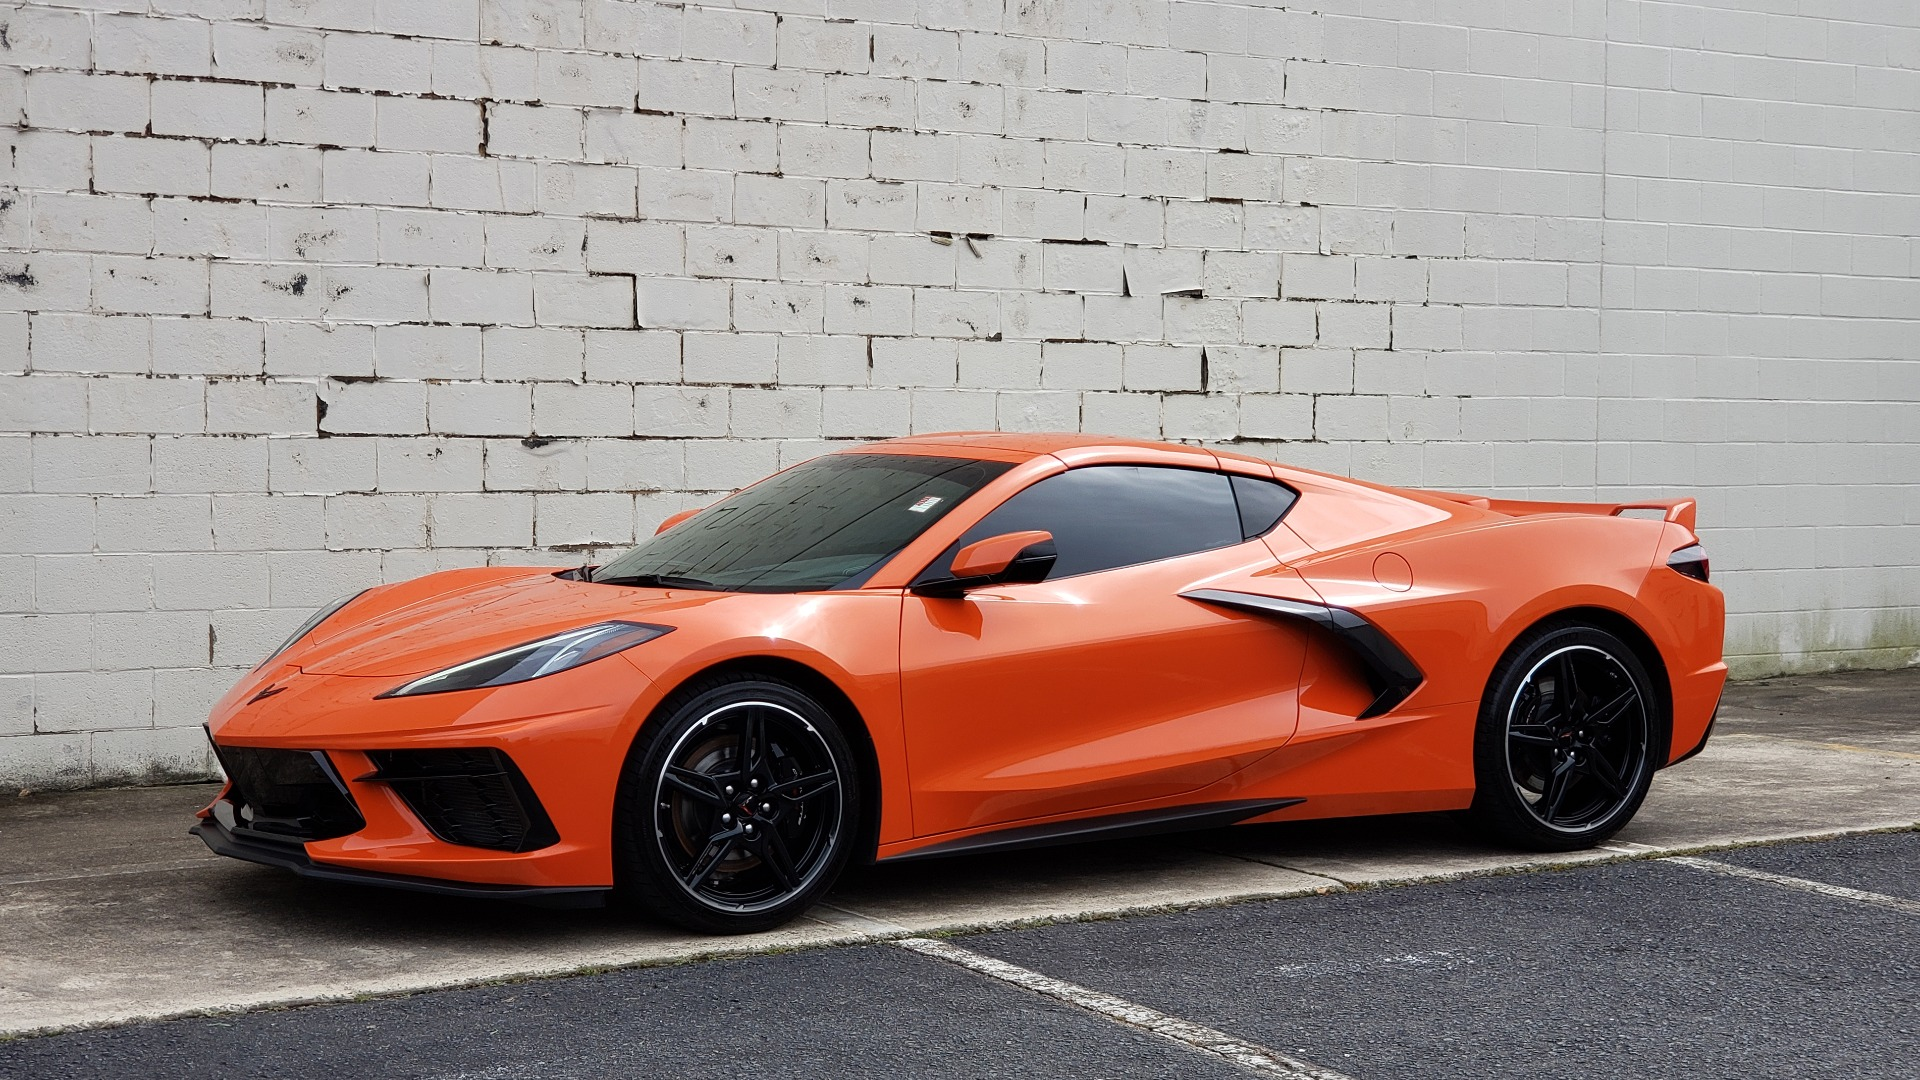 Used 2020 Chevrolet CORVETTE C8 STINGRAY 2LT / 6.2L V8 / 8-SPD AUTO / NAV / BOSE / REARVIEW / DATA RECOR for sale Sold at Formula Imports in Charlotte NC 28227 88